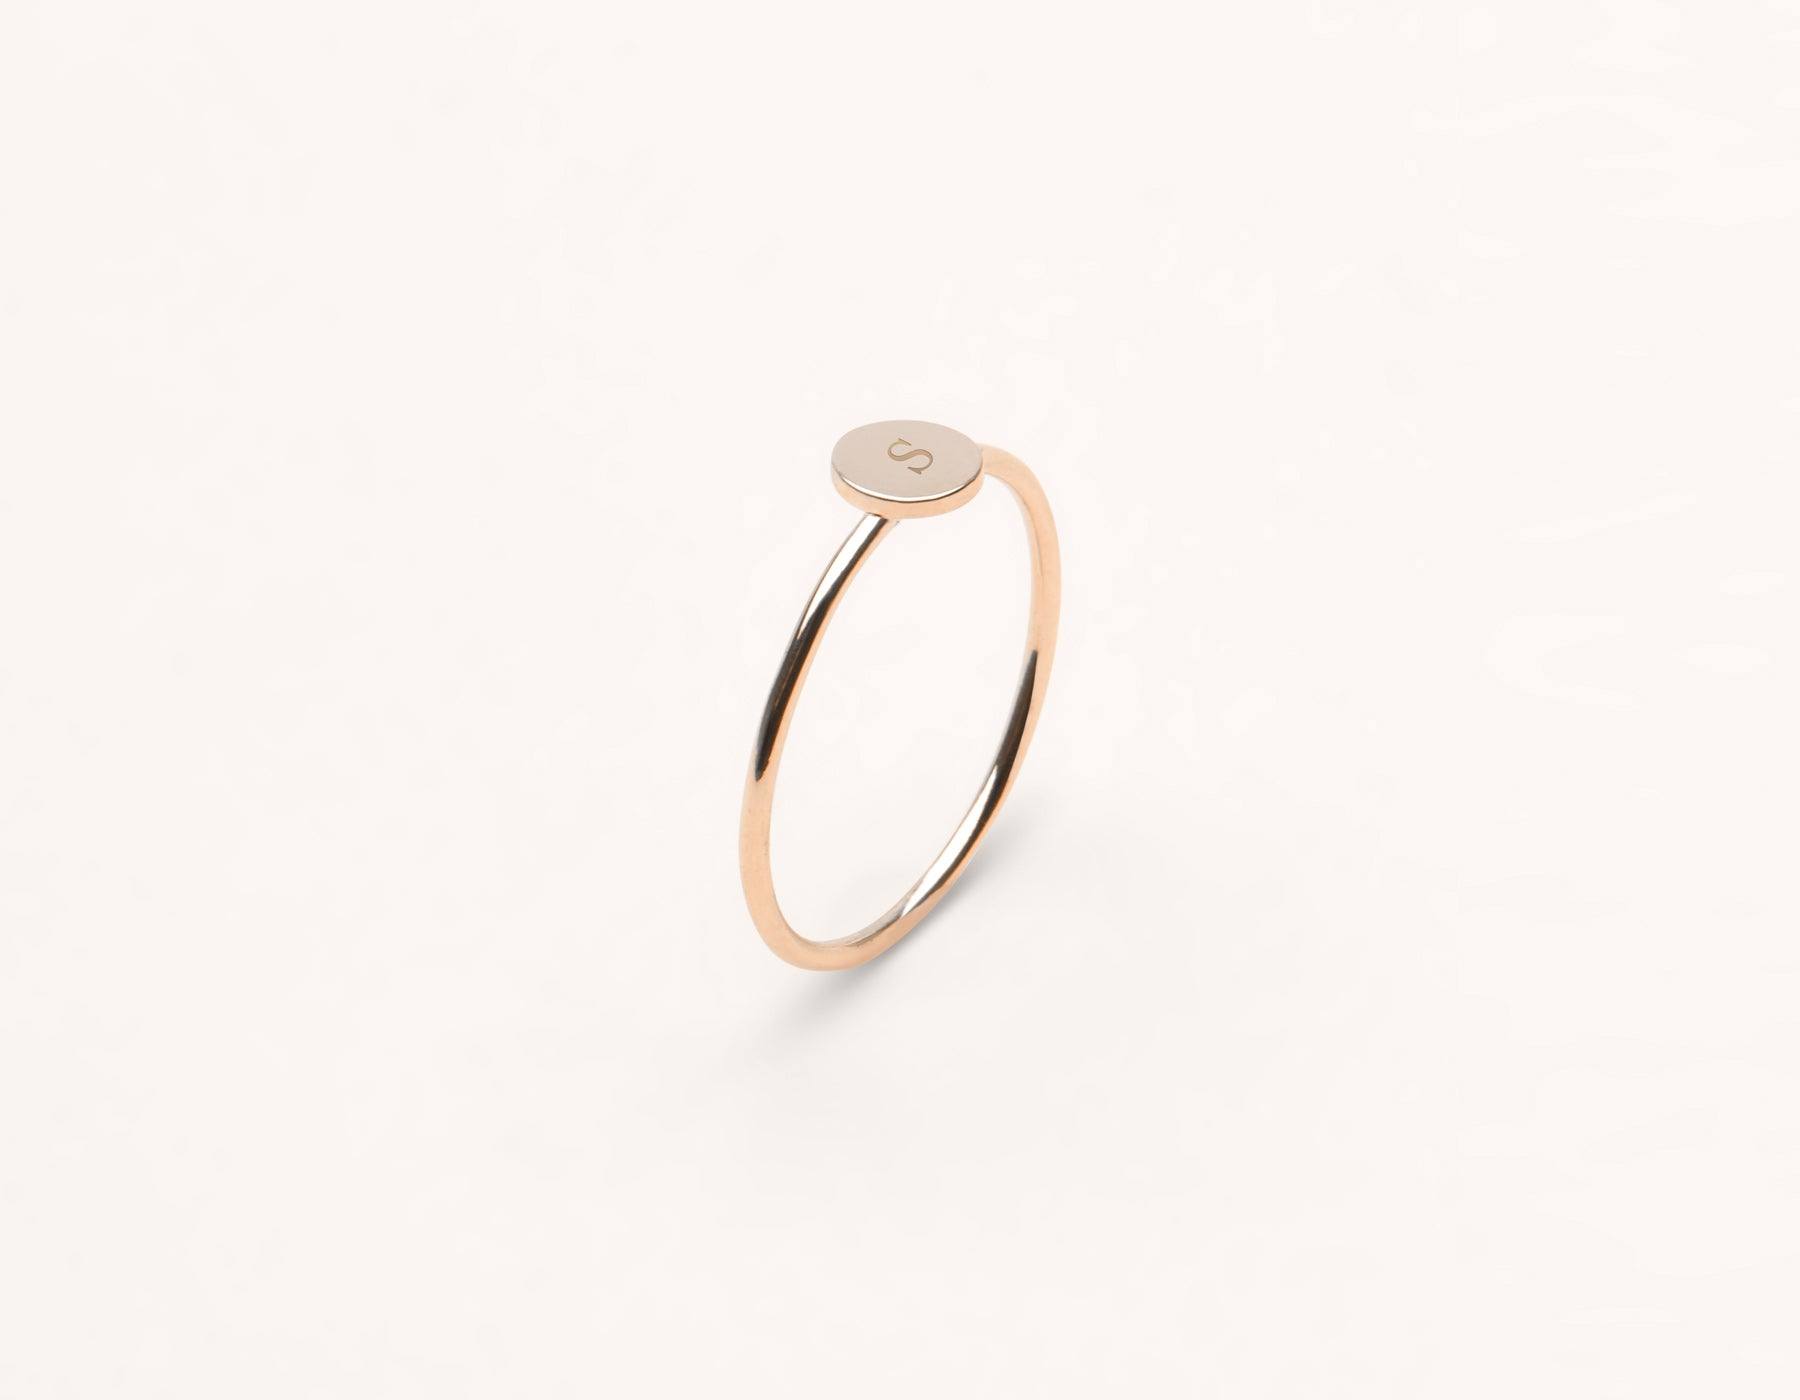 Customizable Initial Ring 14k solid gold minimalist round disk Vrai and Oro, 14K Rose Gold